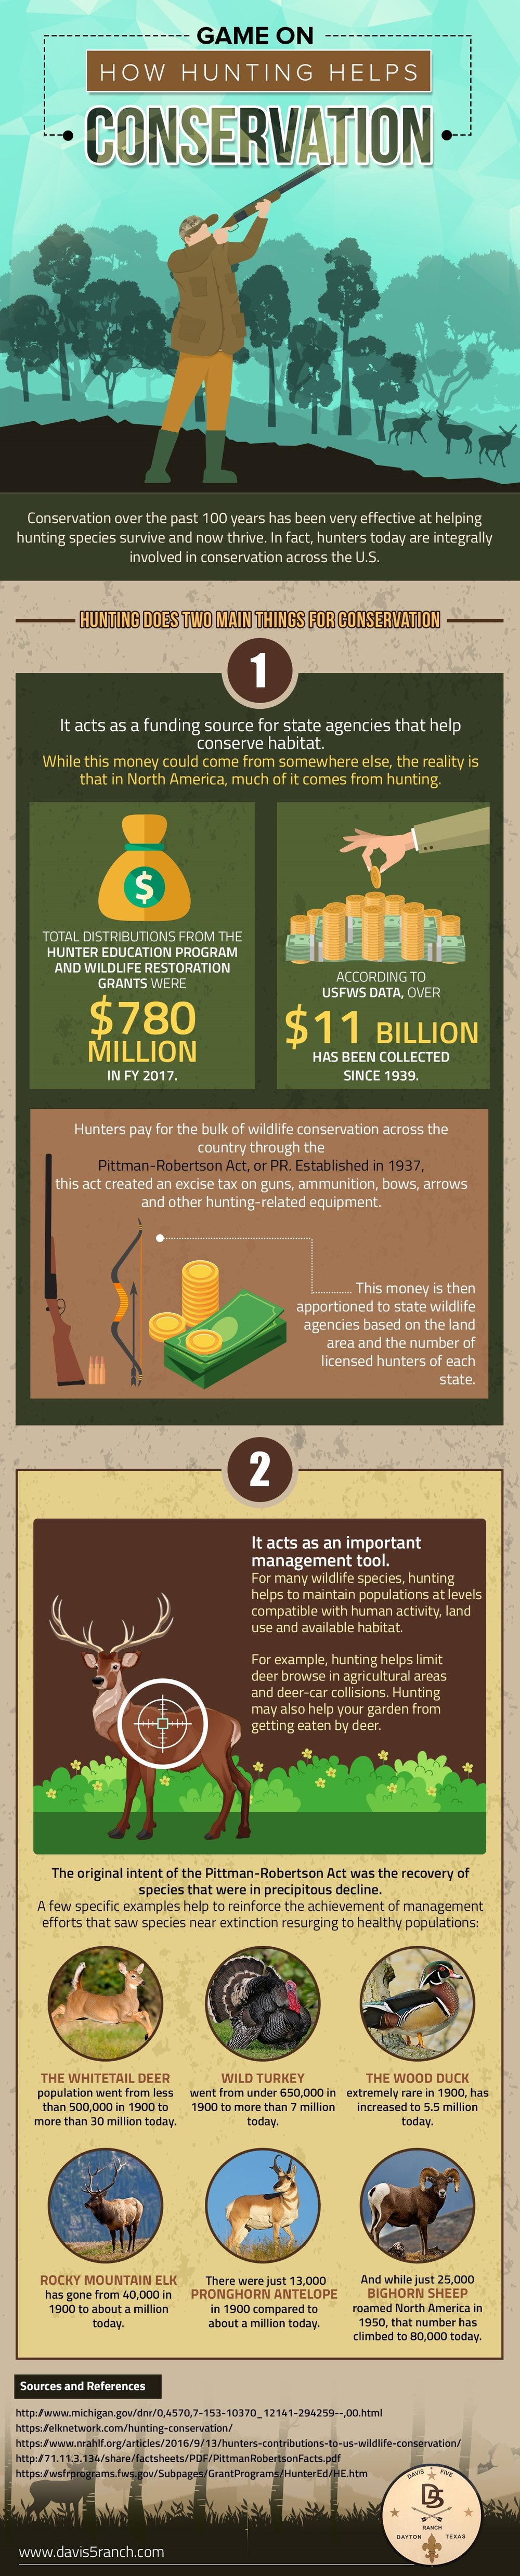 How Hunting Helps Conservation